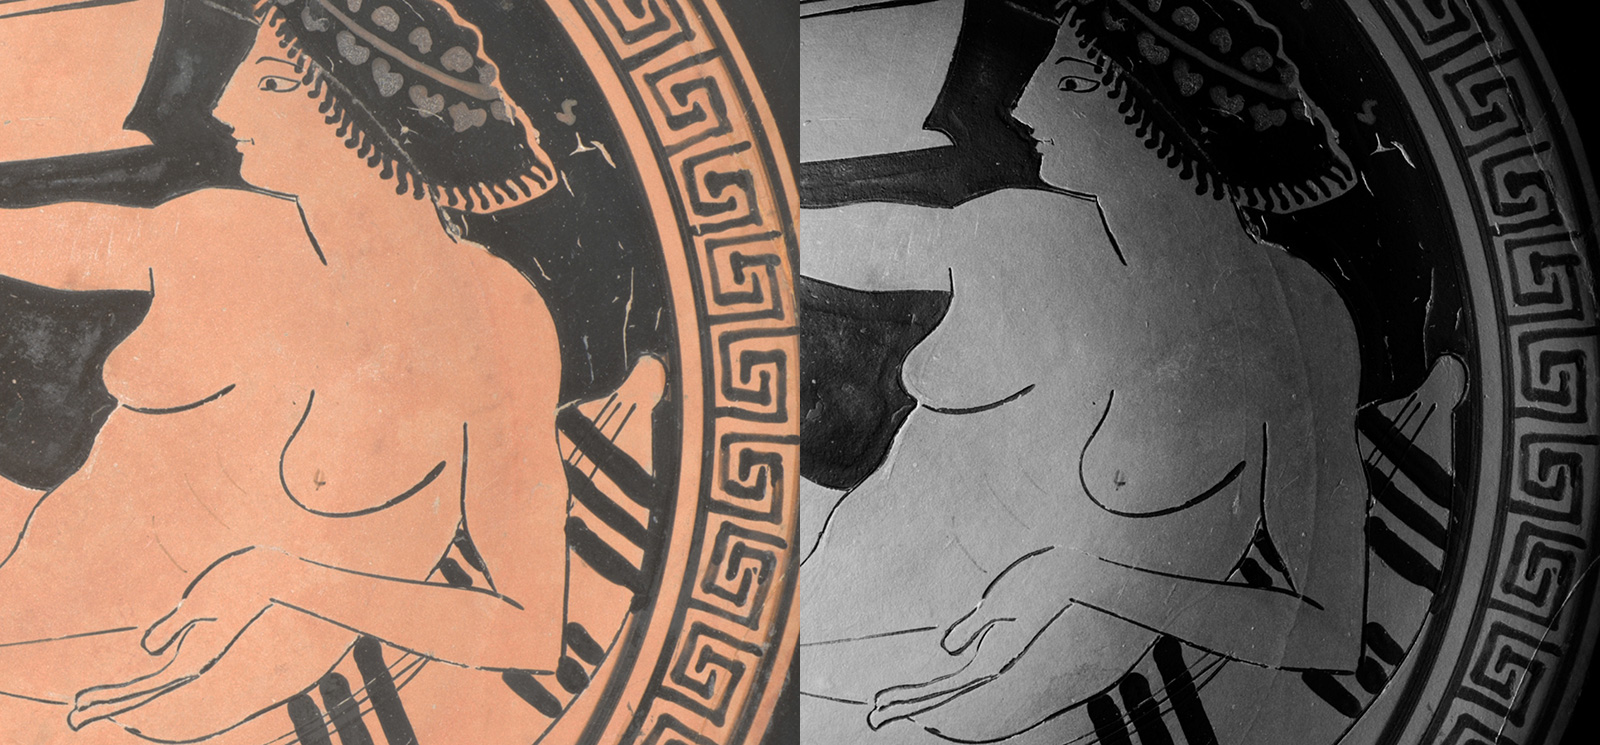 Detail of the painting on an ancient Greek cup showing the torso of a nude woman